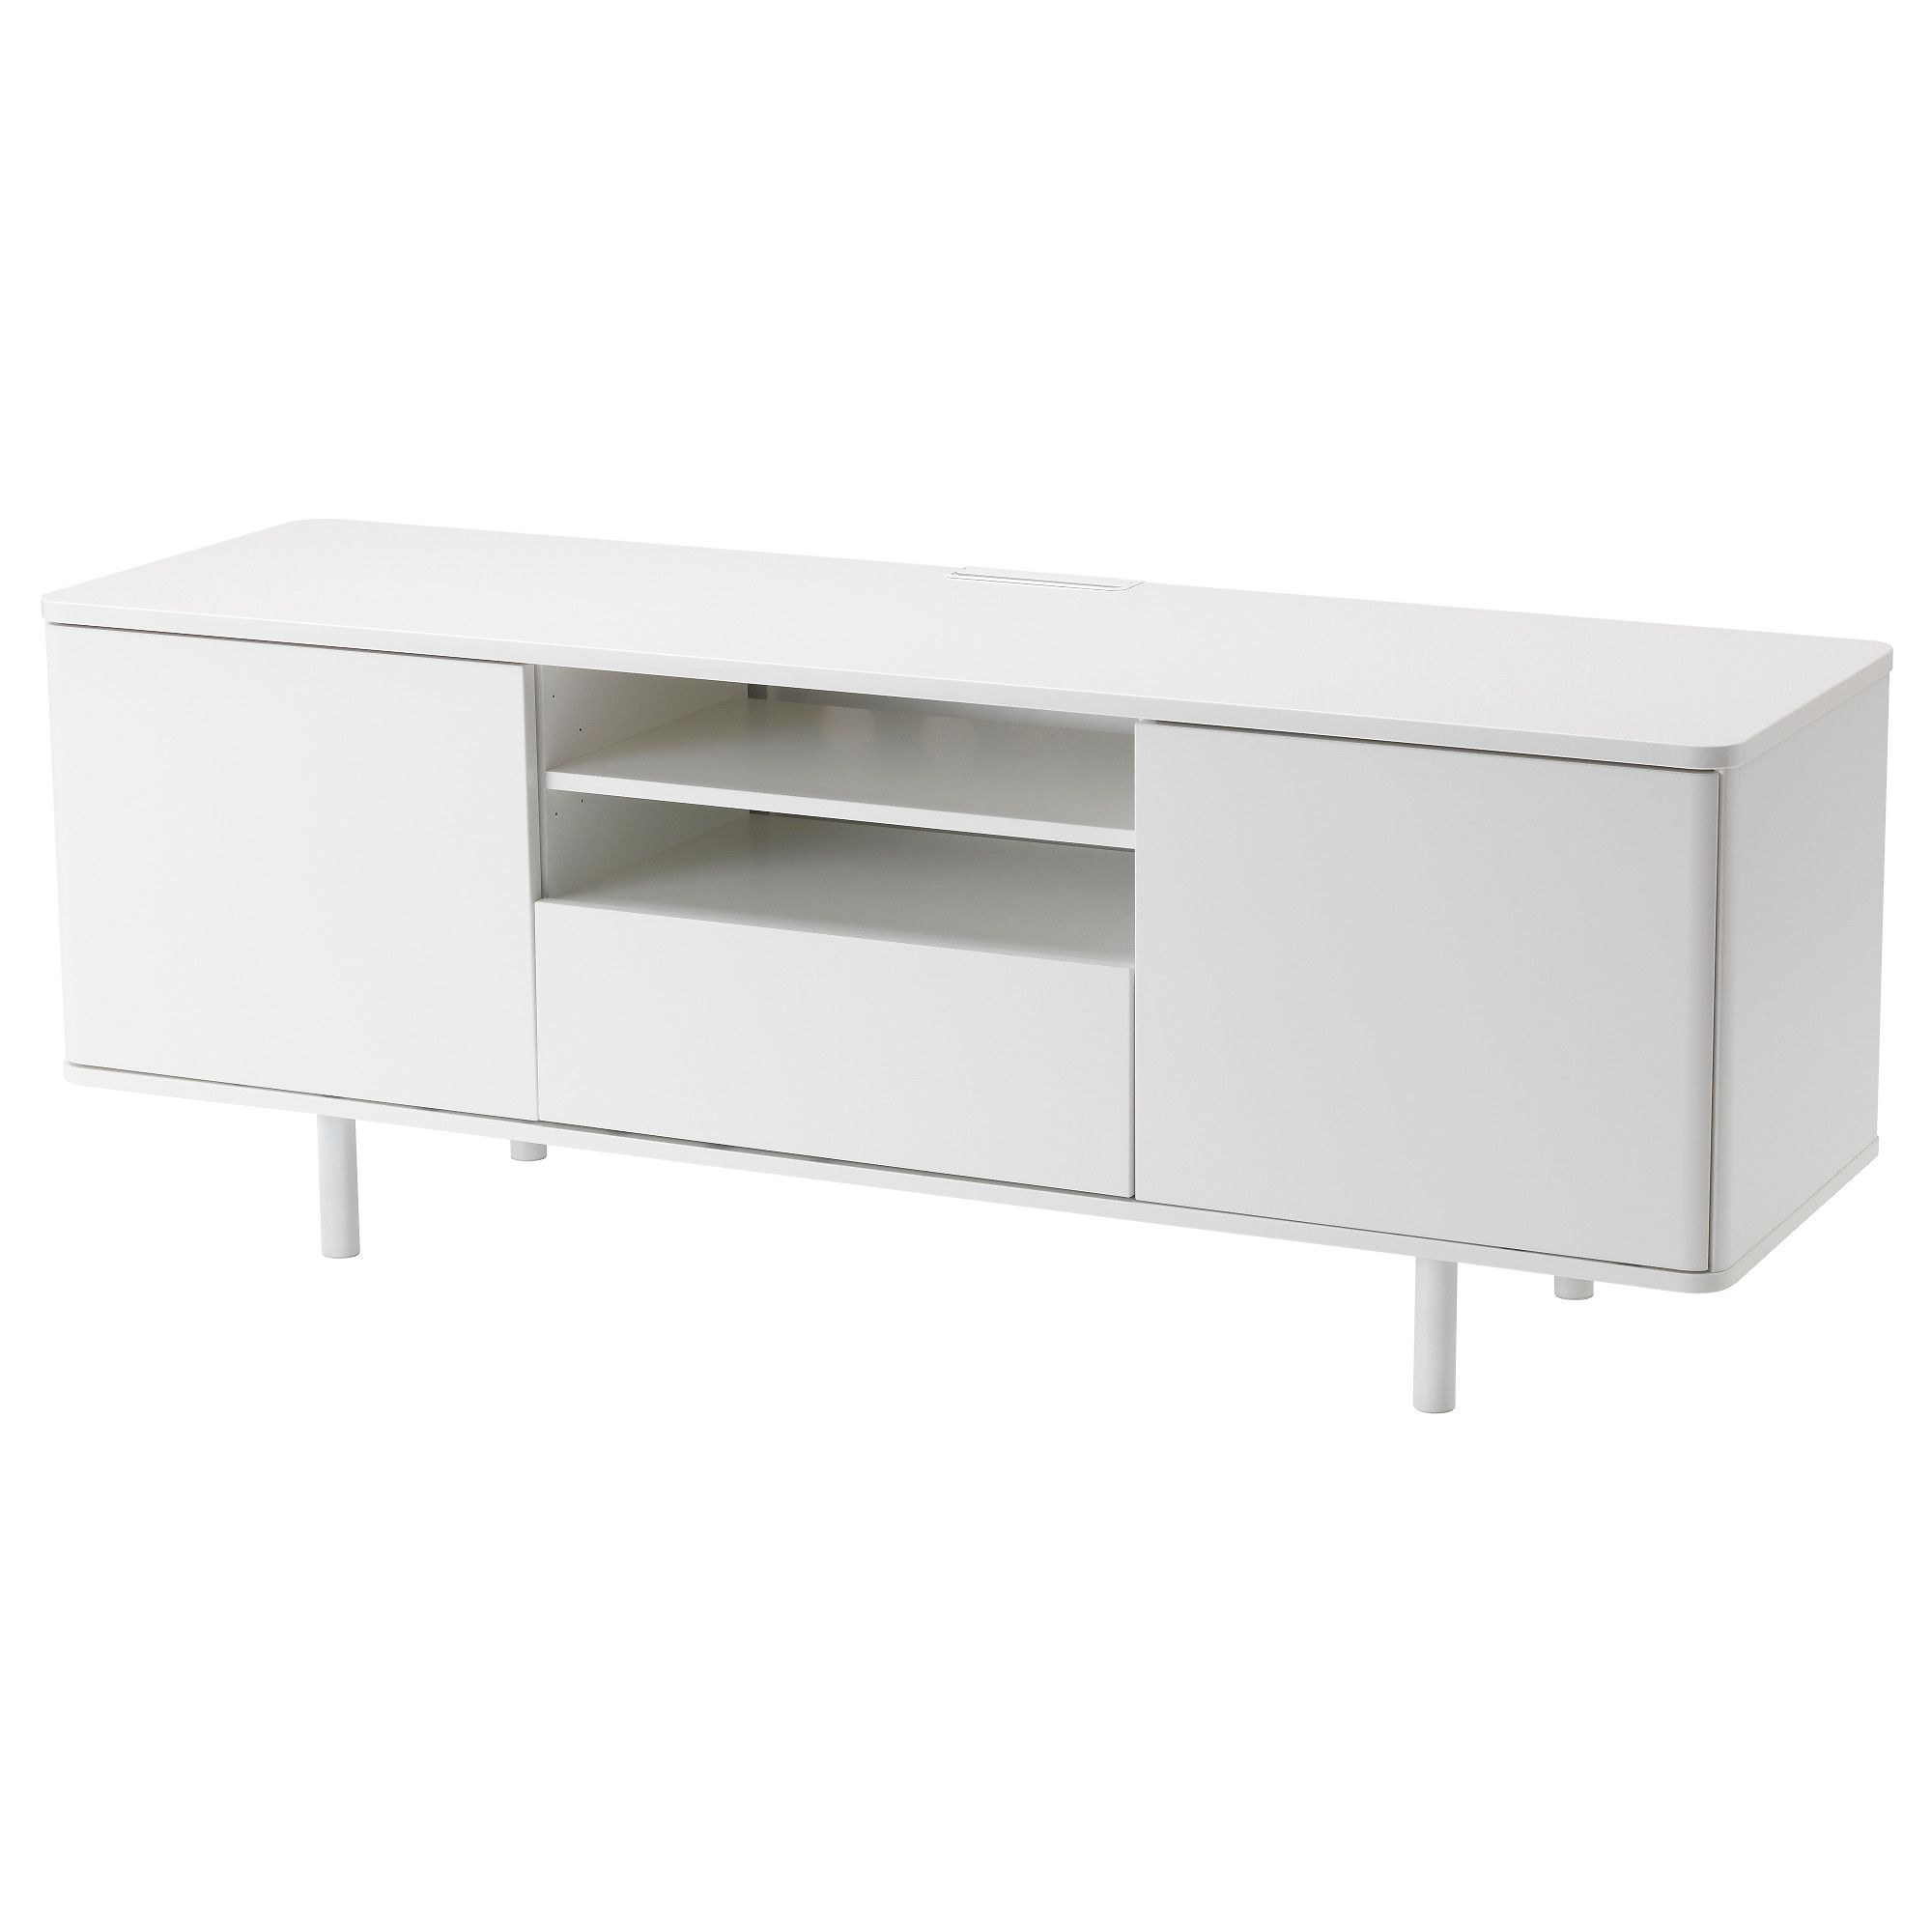 IKEA MOSTORP TV bench White cm The large drawer makes it easy to keep  remote controls, game controllers and other TV accessories organised.